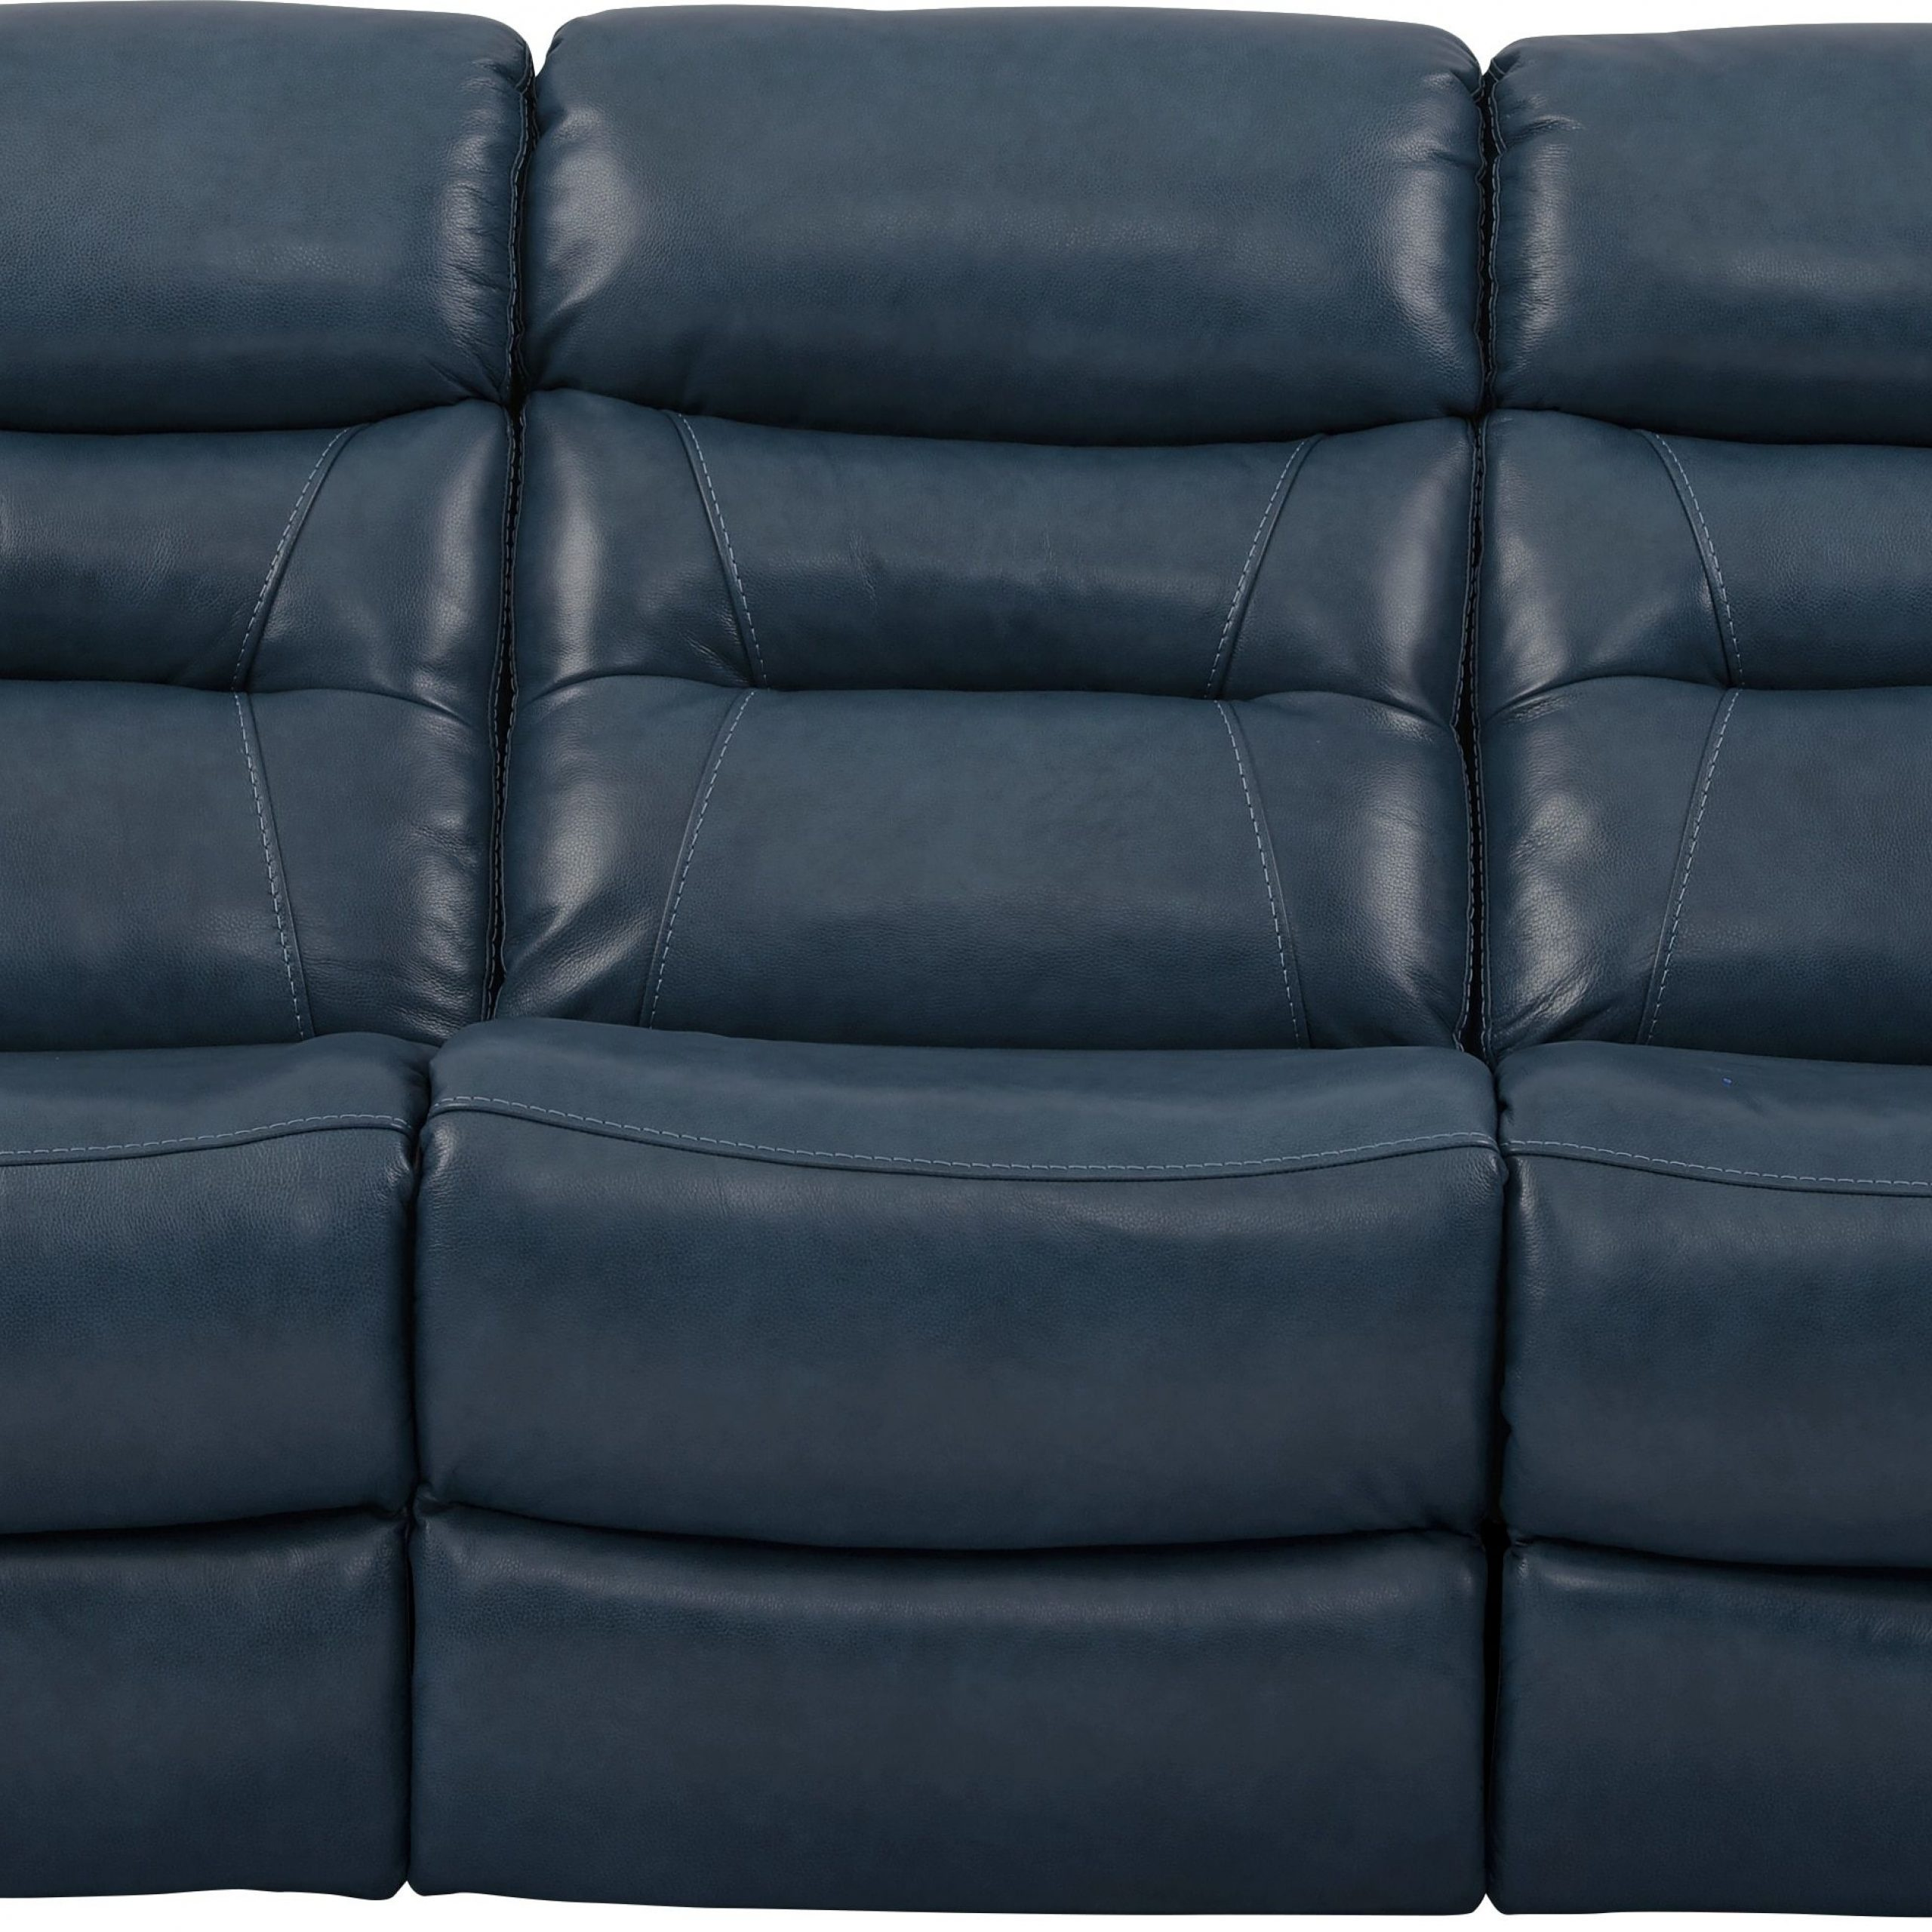 Bloutop Upholstered Sectional Sofas Pertaining To 2017 Blue Reclining Sofa Get The Best Of 2018 Sofas Market Blue (View 22 of 25)